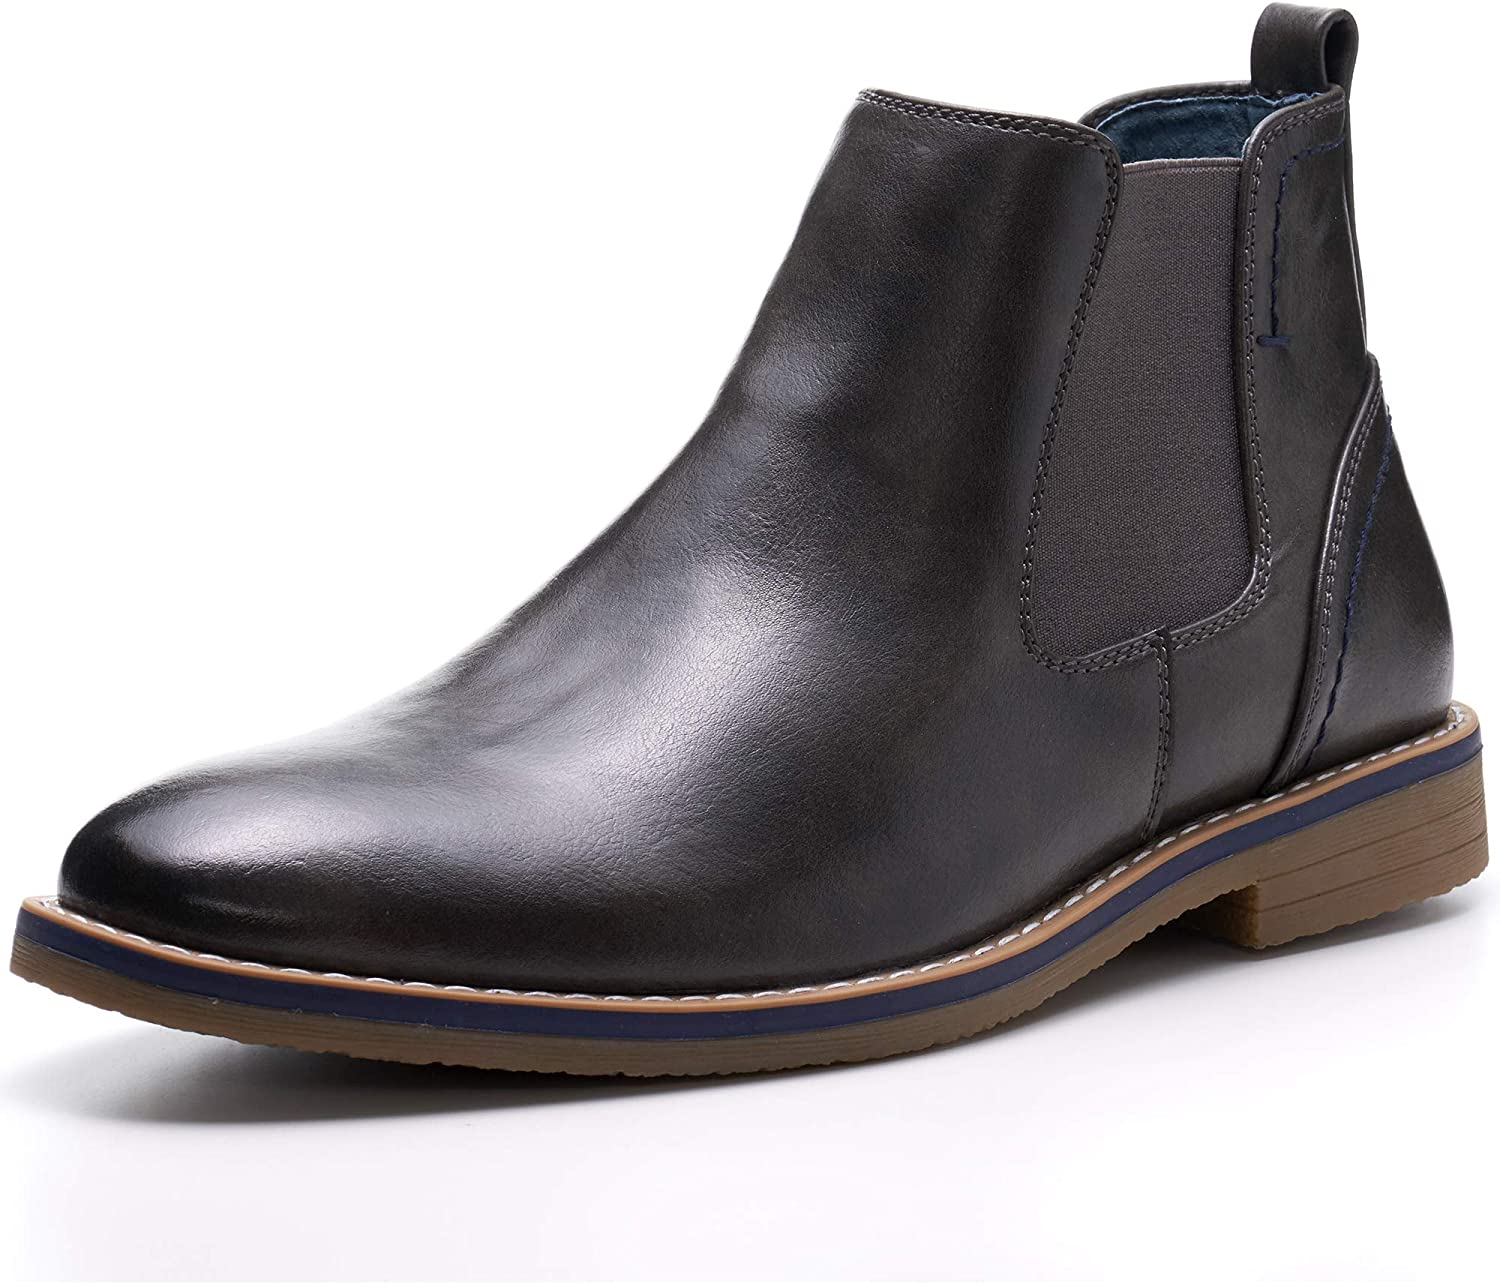 Owen Chelsea Boots Pull Up Ankle Boots